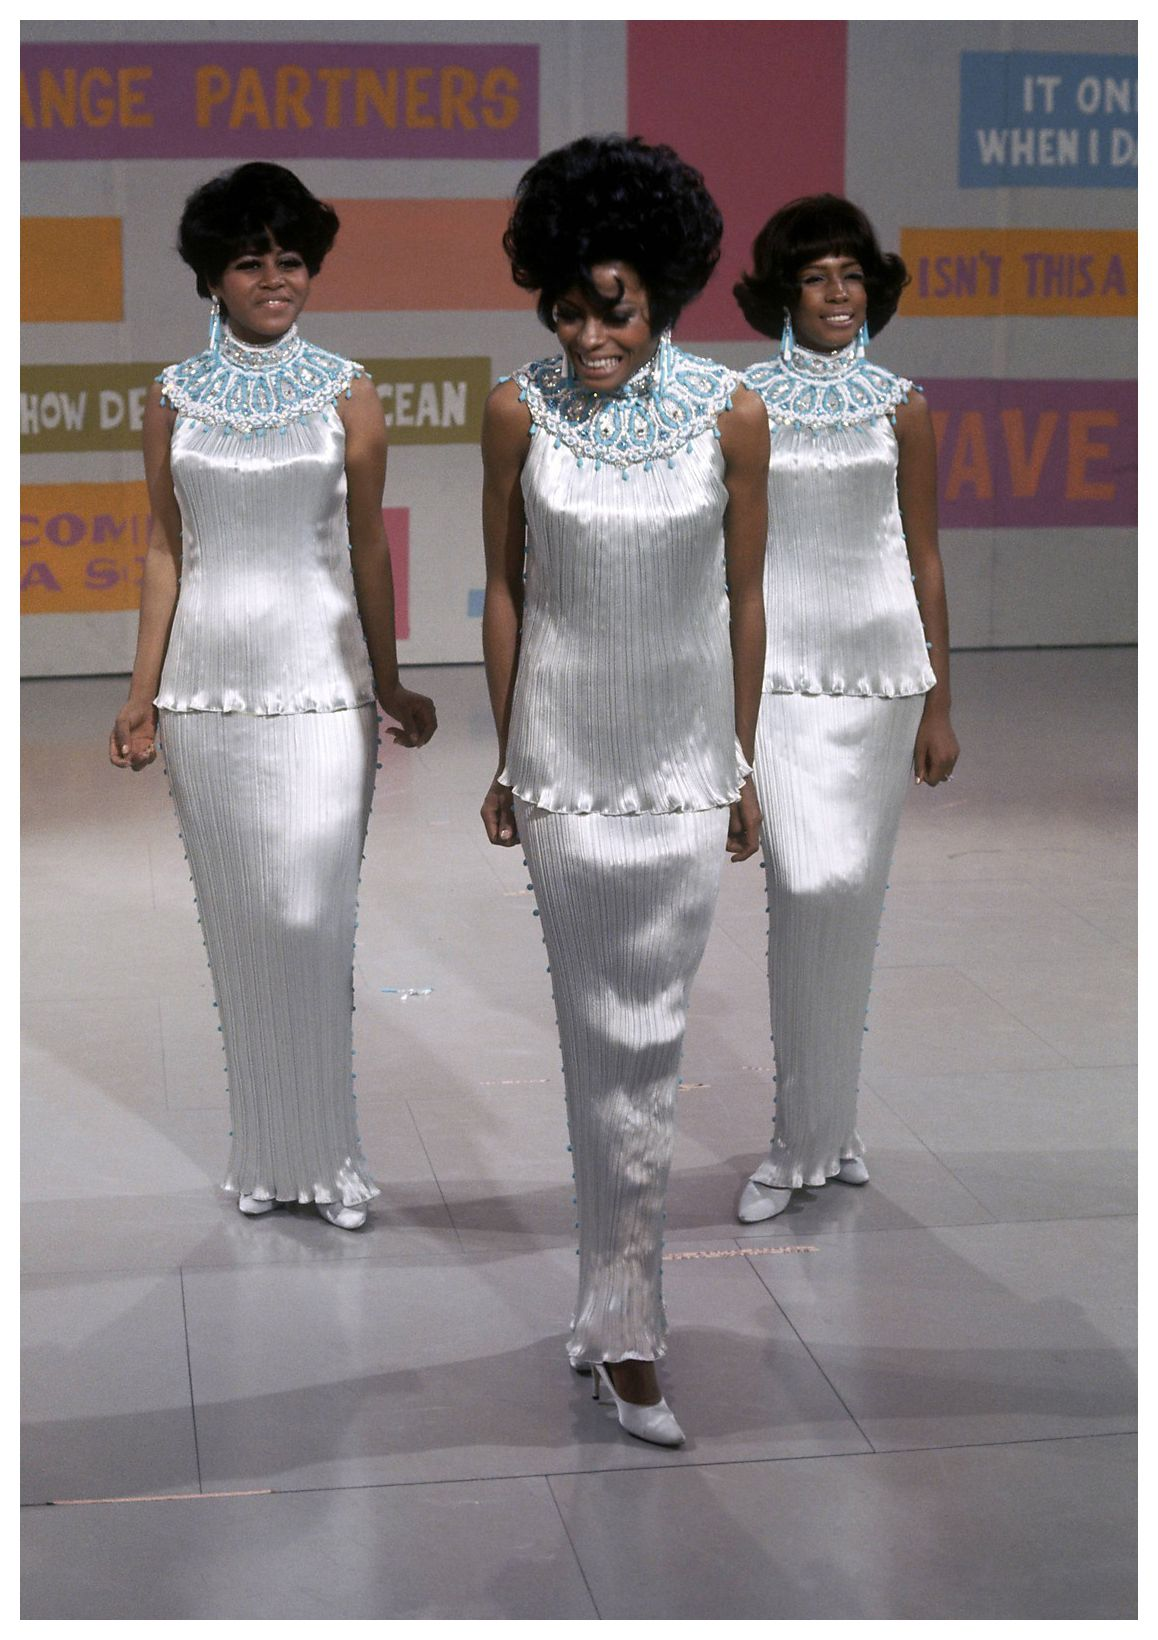 Sound of music wedding dress  The Supremes  Love the Music   Pinterest  Costumes Galleries